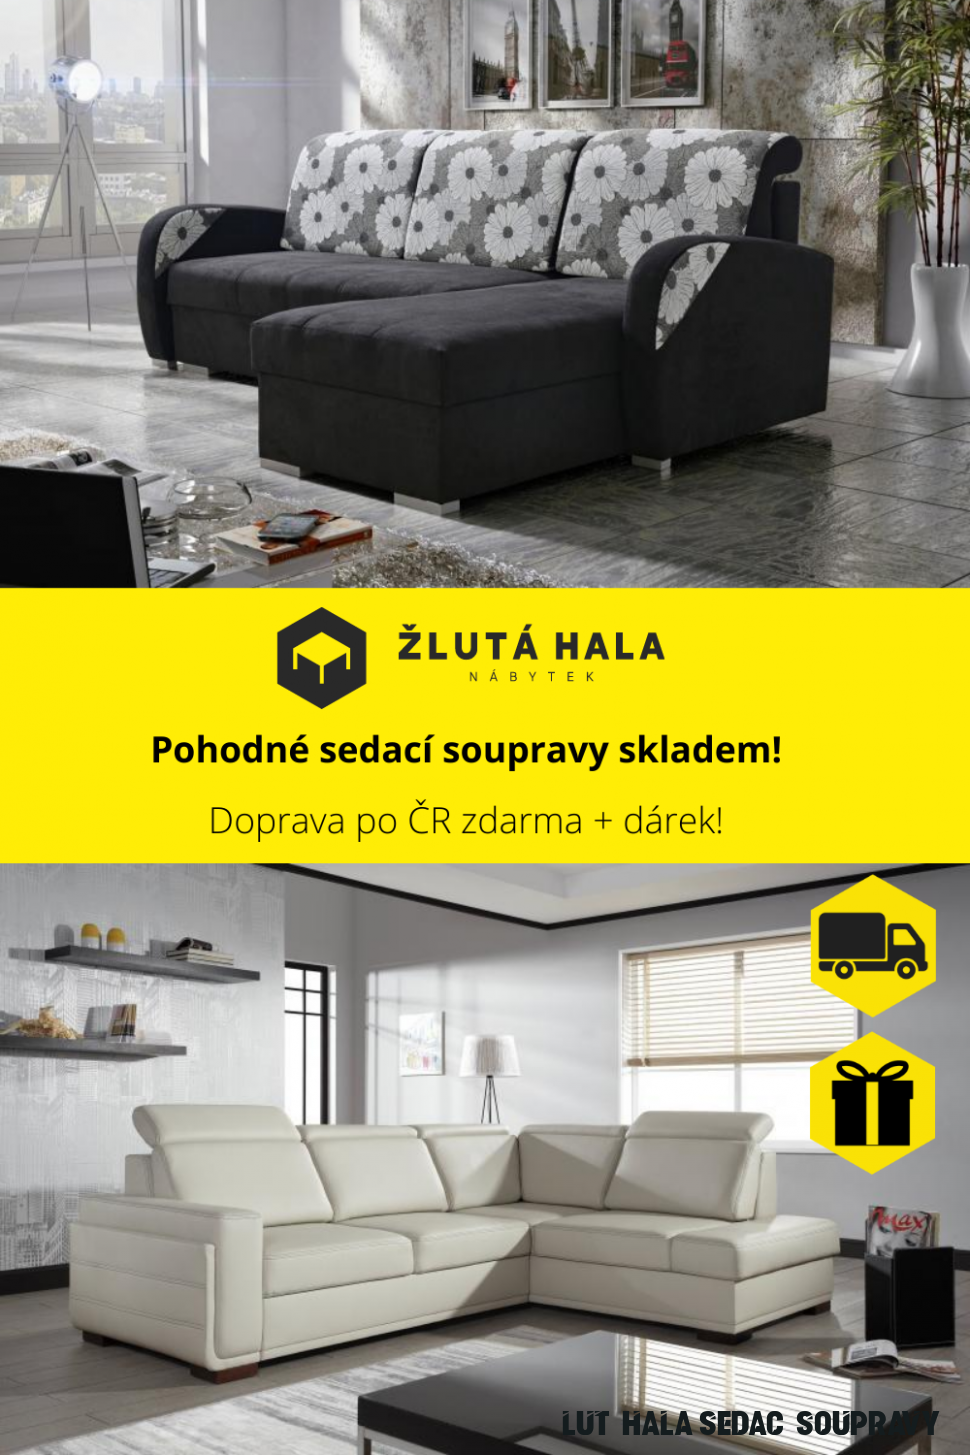 Sedací soupravy skladem! in 6  Sectional couch, Furniture, Decor